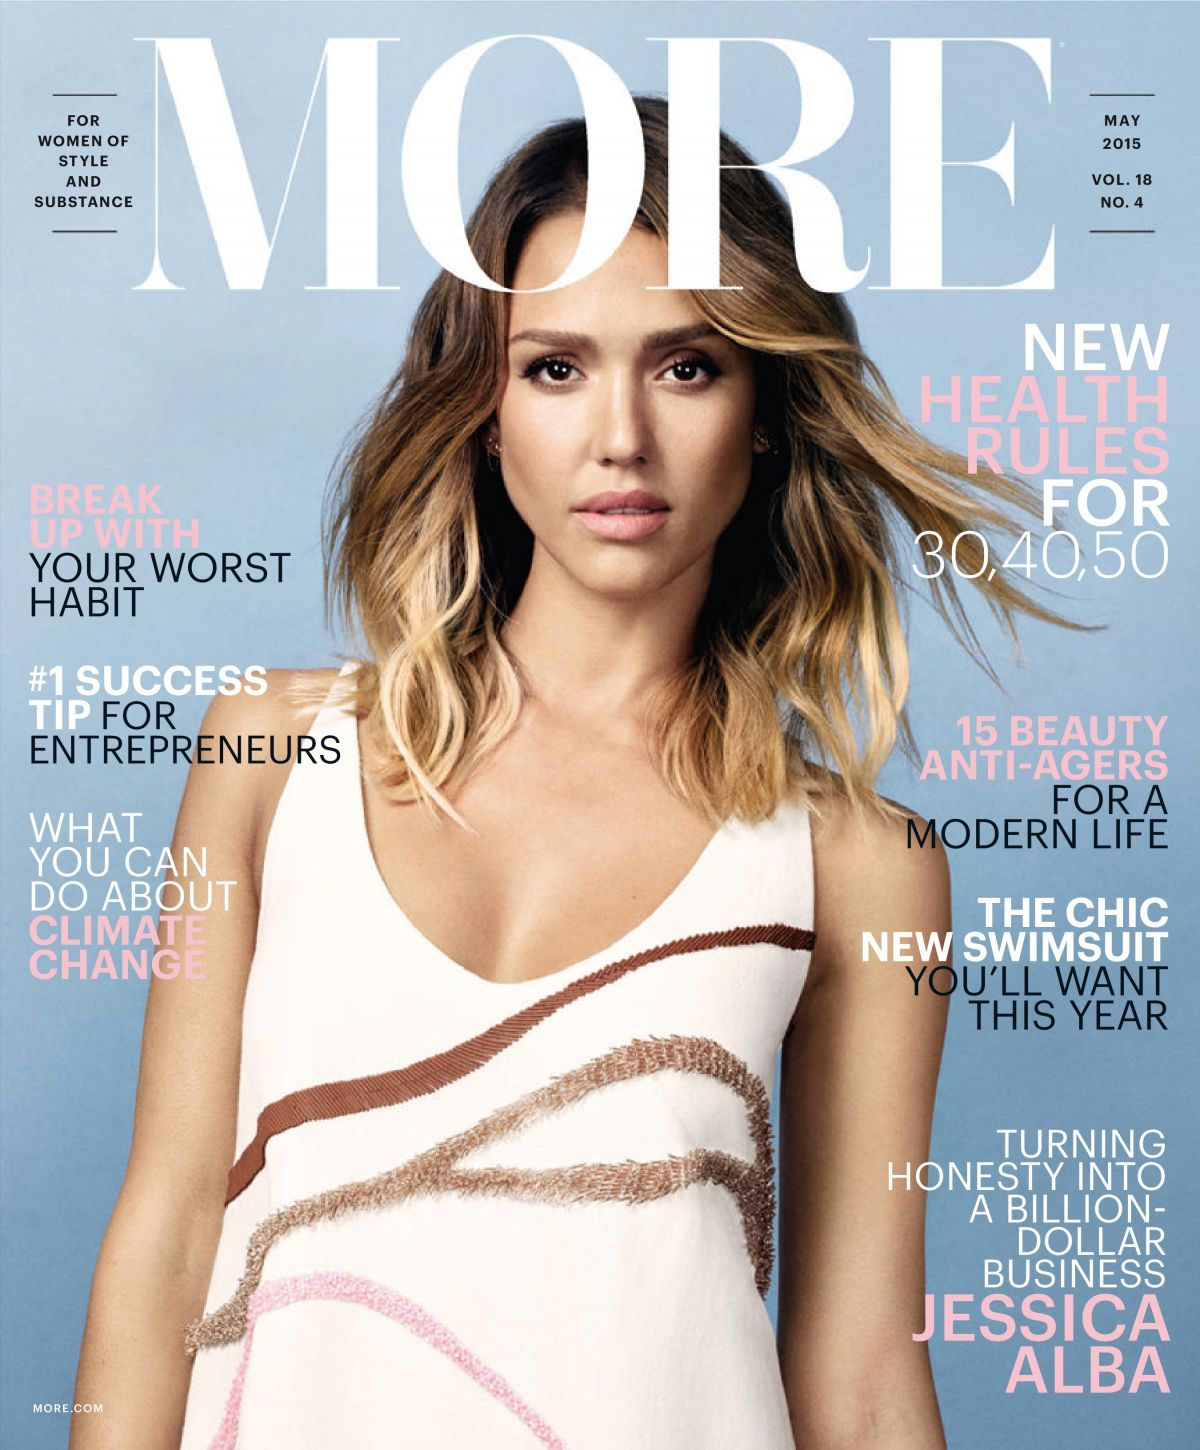 JESSICA ALBA in More Magazine, May 2015 Issue